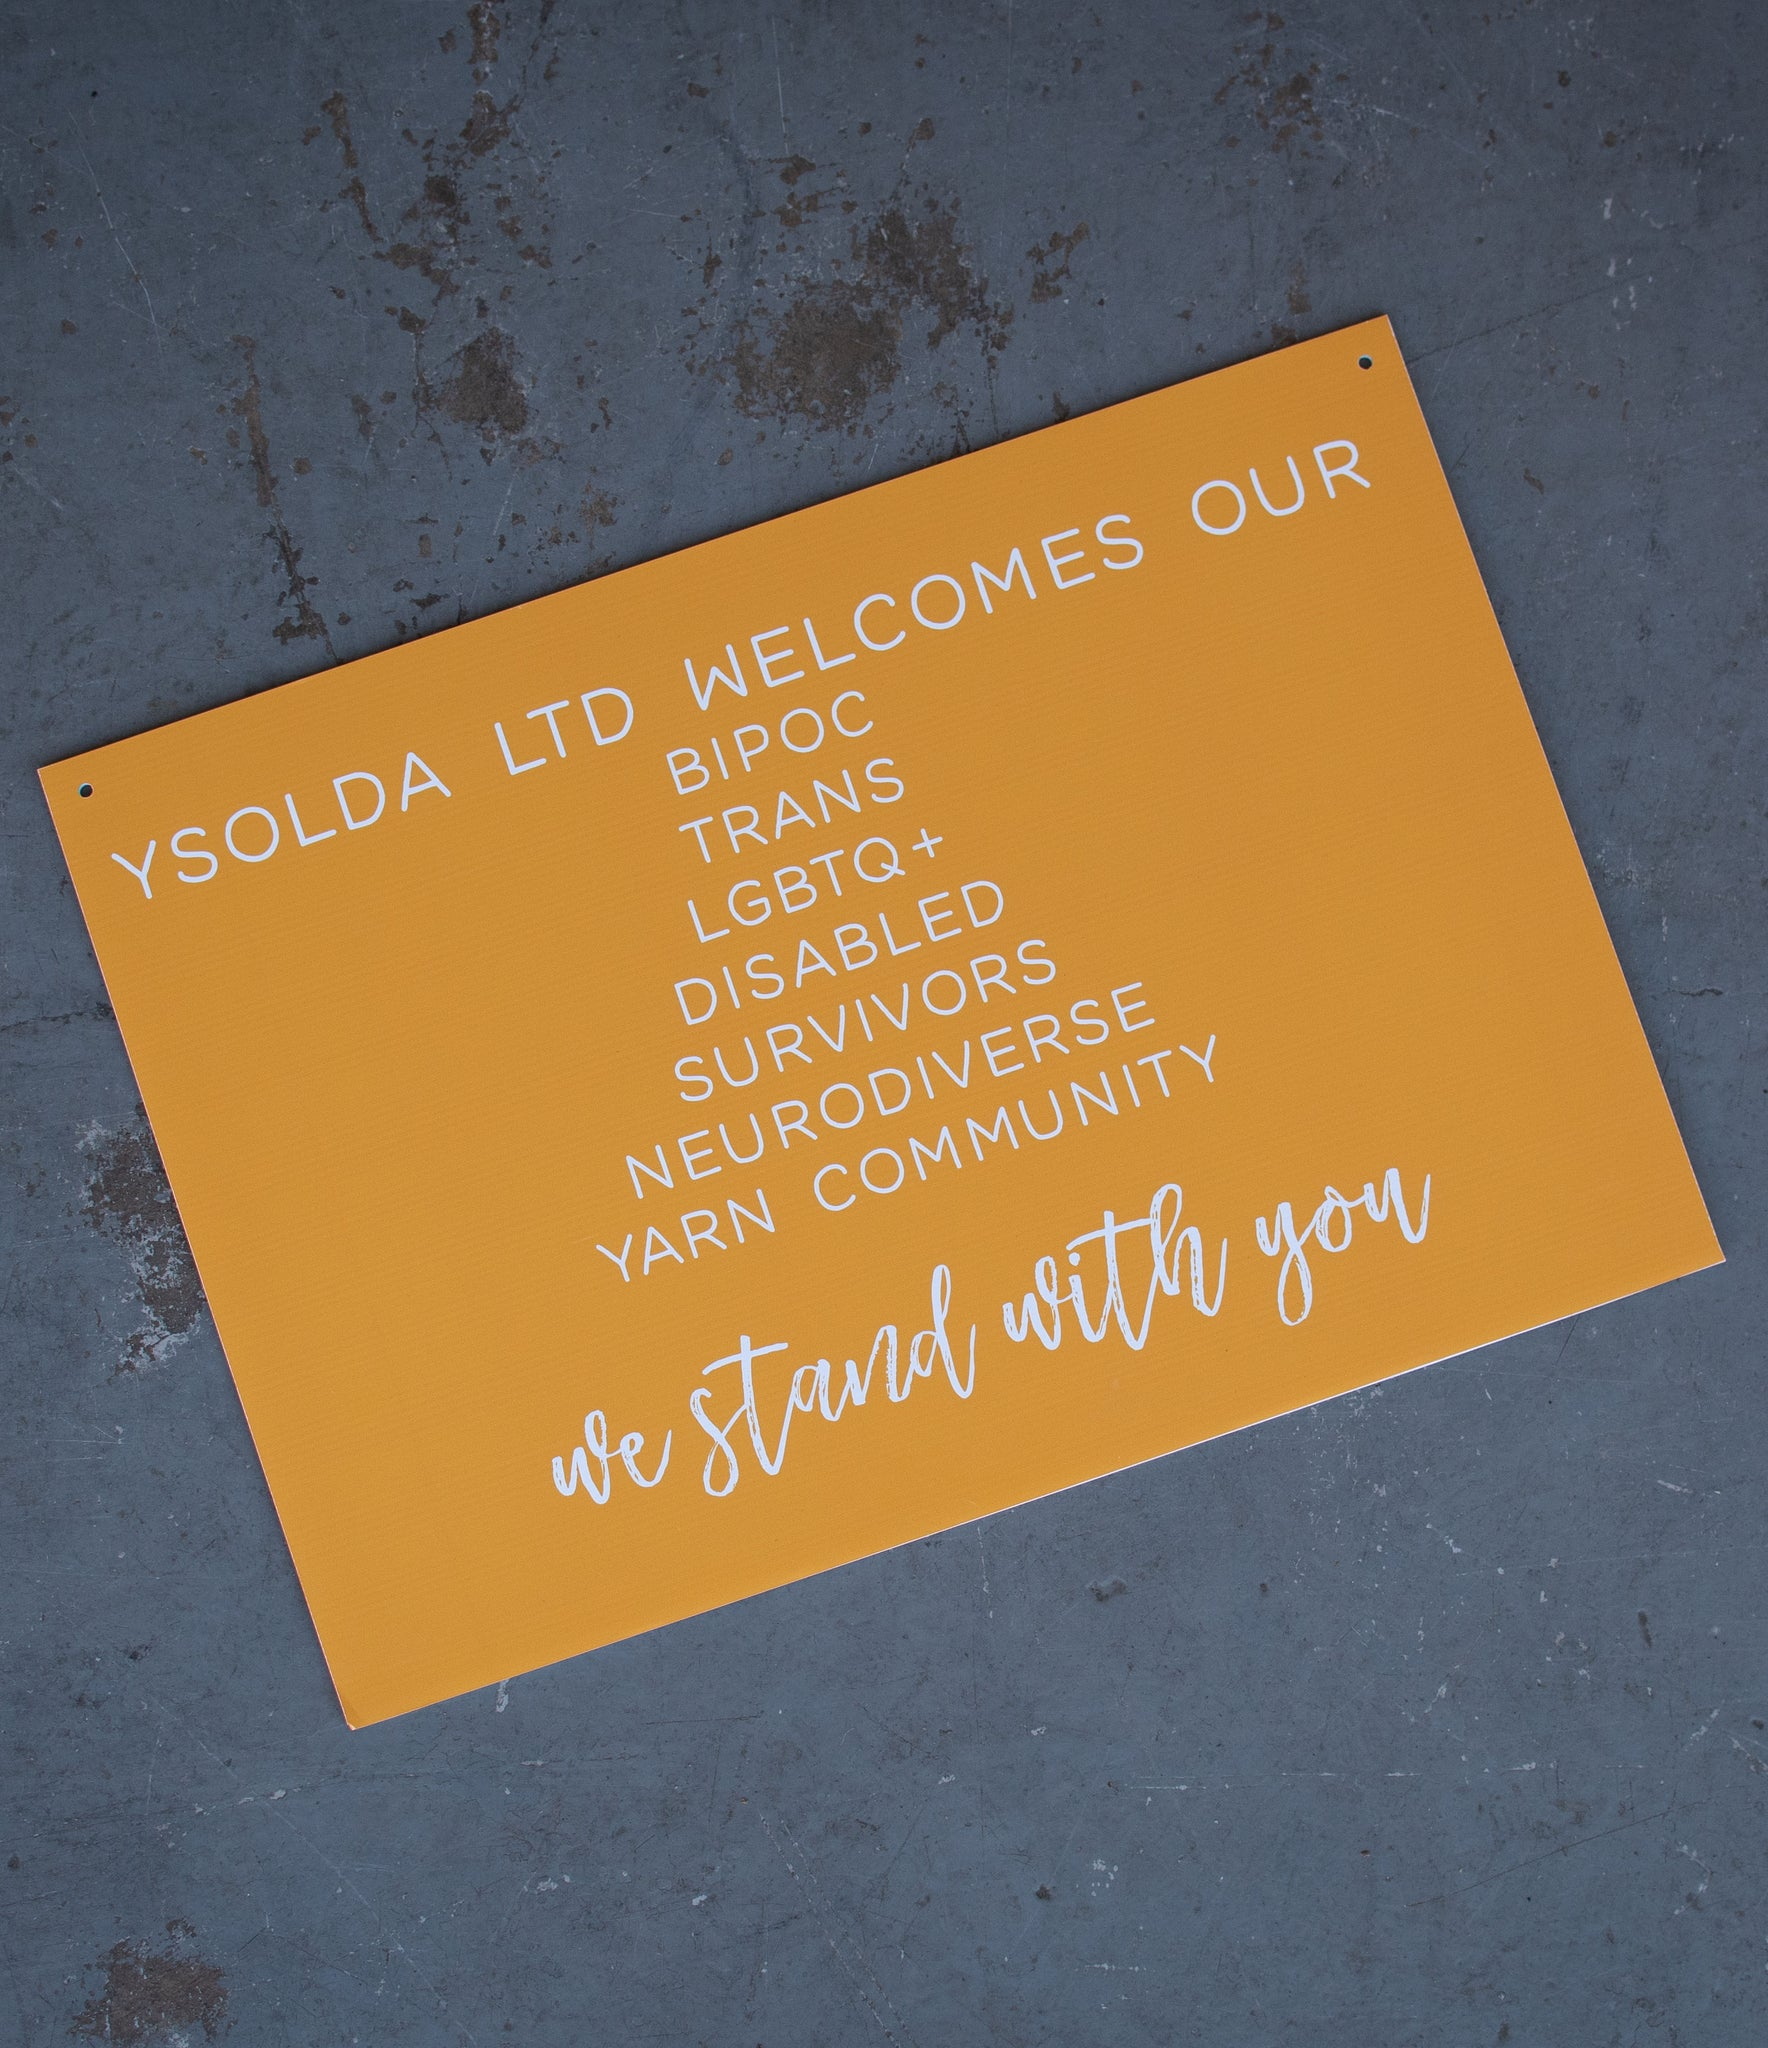 Image of a sign that reads 'Ysolda Ltd welcomes our BIPOC, Trans, LGBTQ+, Disabled, Survivors, Neurodiverse Yarn Community. We Stand With You.